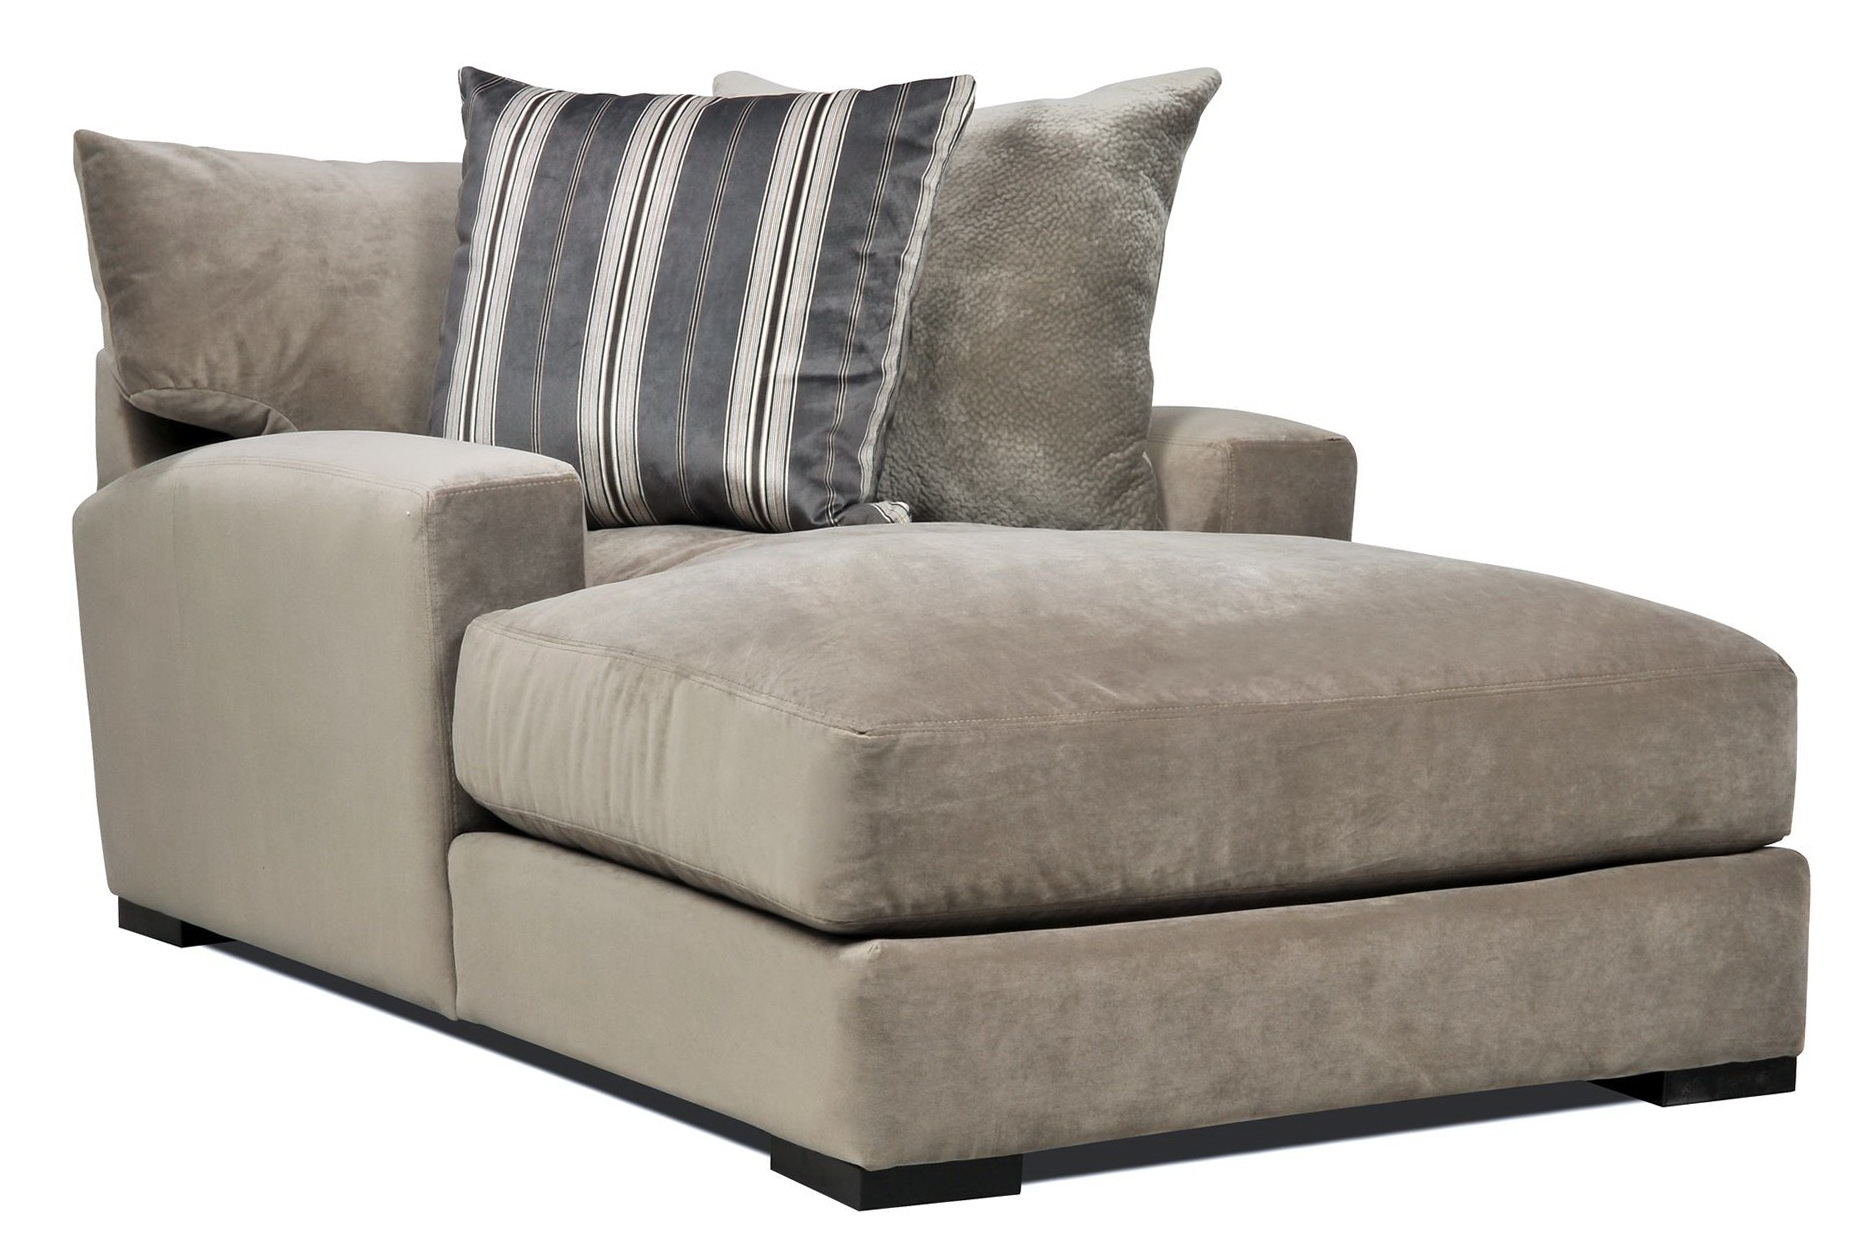 Chaise Lounge Chairs For Sunroom Pertaining To Current Double Wide Chaise Lounge Indoor With 2 Cushions (View 11 of 15)